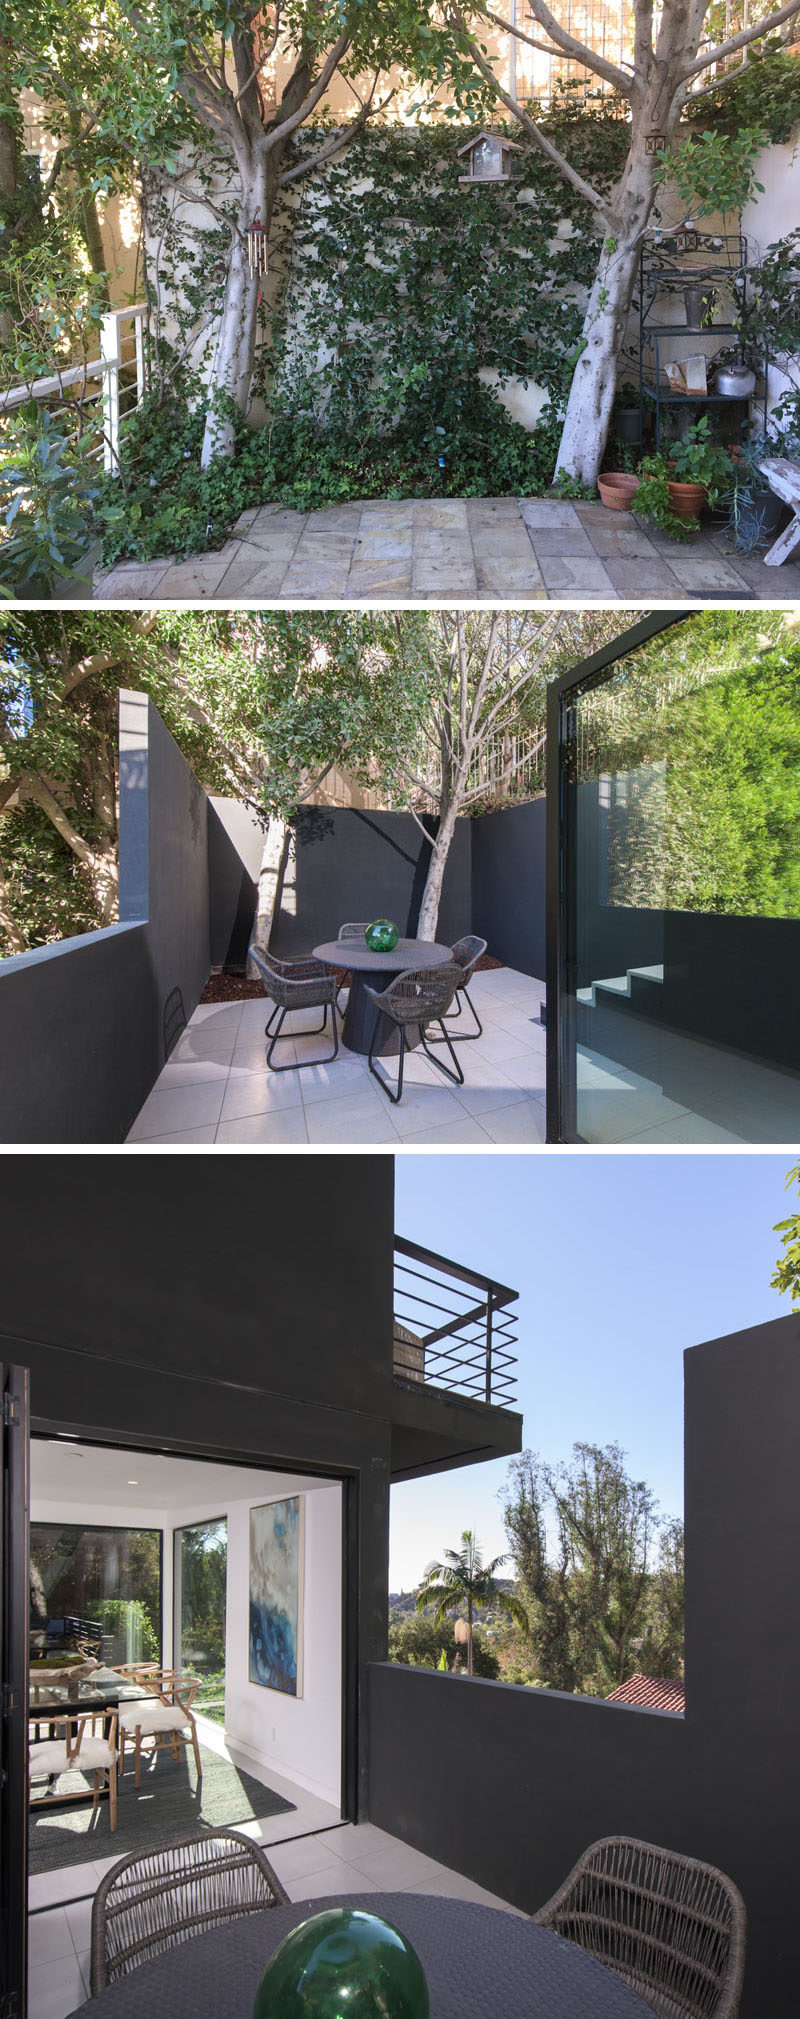 BEFORE & AFTER - What was once an overgrown patio, has now been transformed into a private oasis with dark walls and a tidy appearance. #Patio #Landscaping #OutdoorSpace